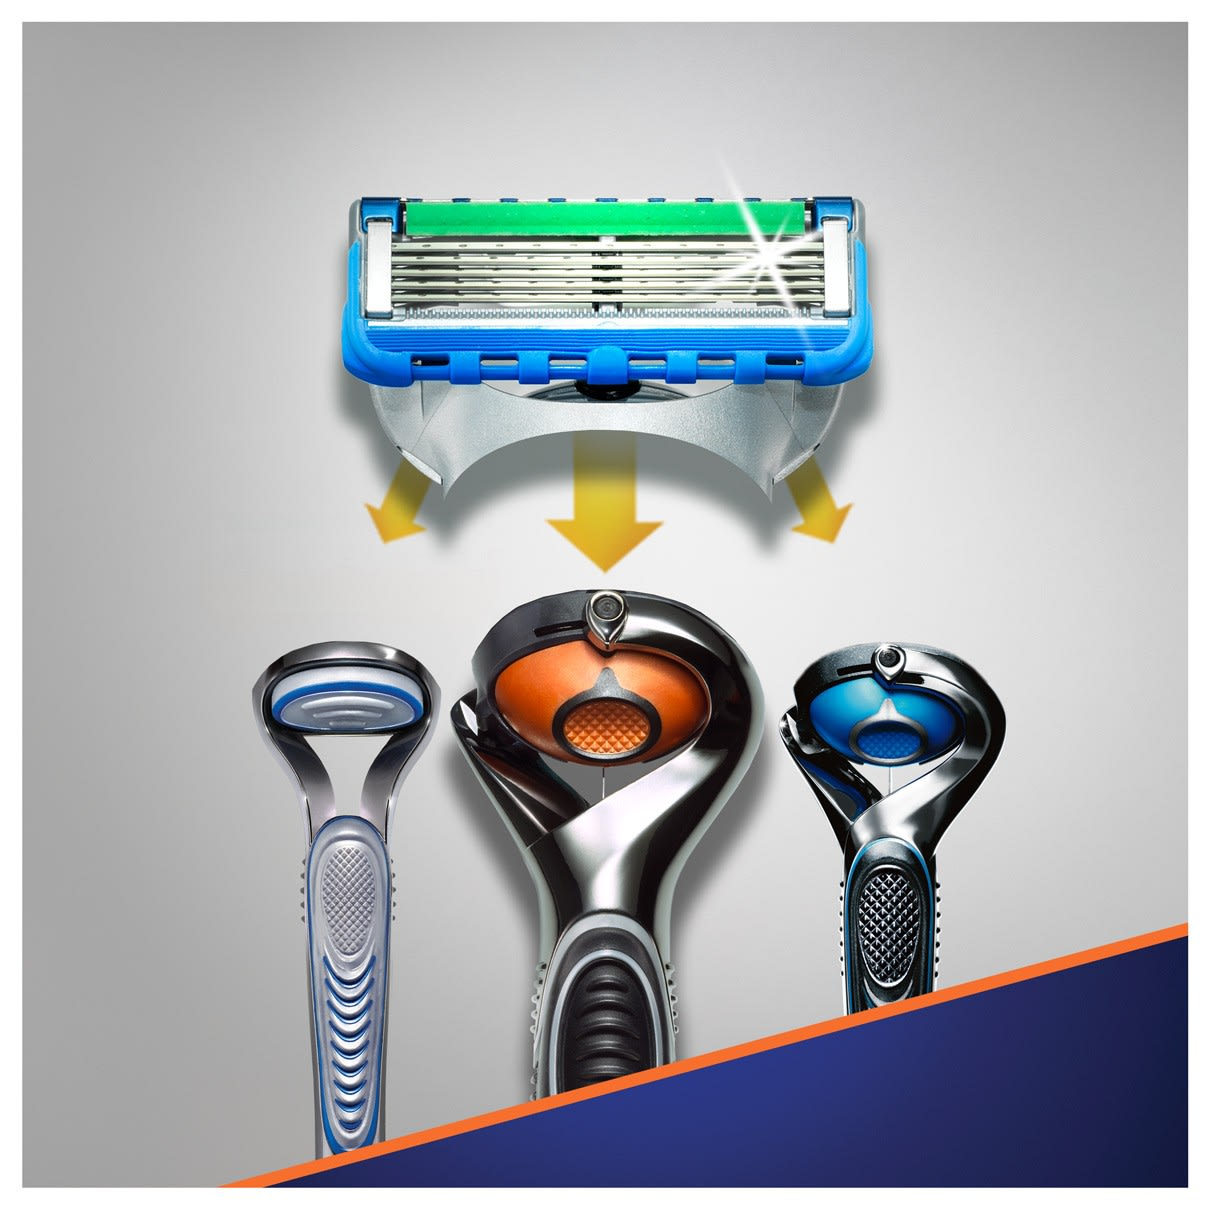 5. Fits all Fusion5 razors